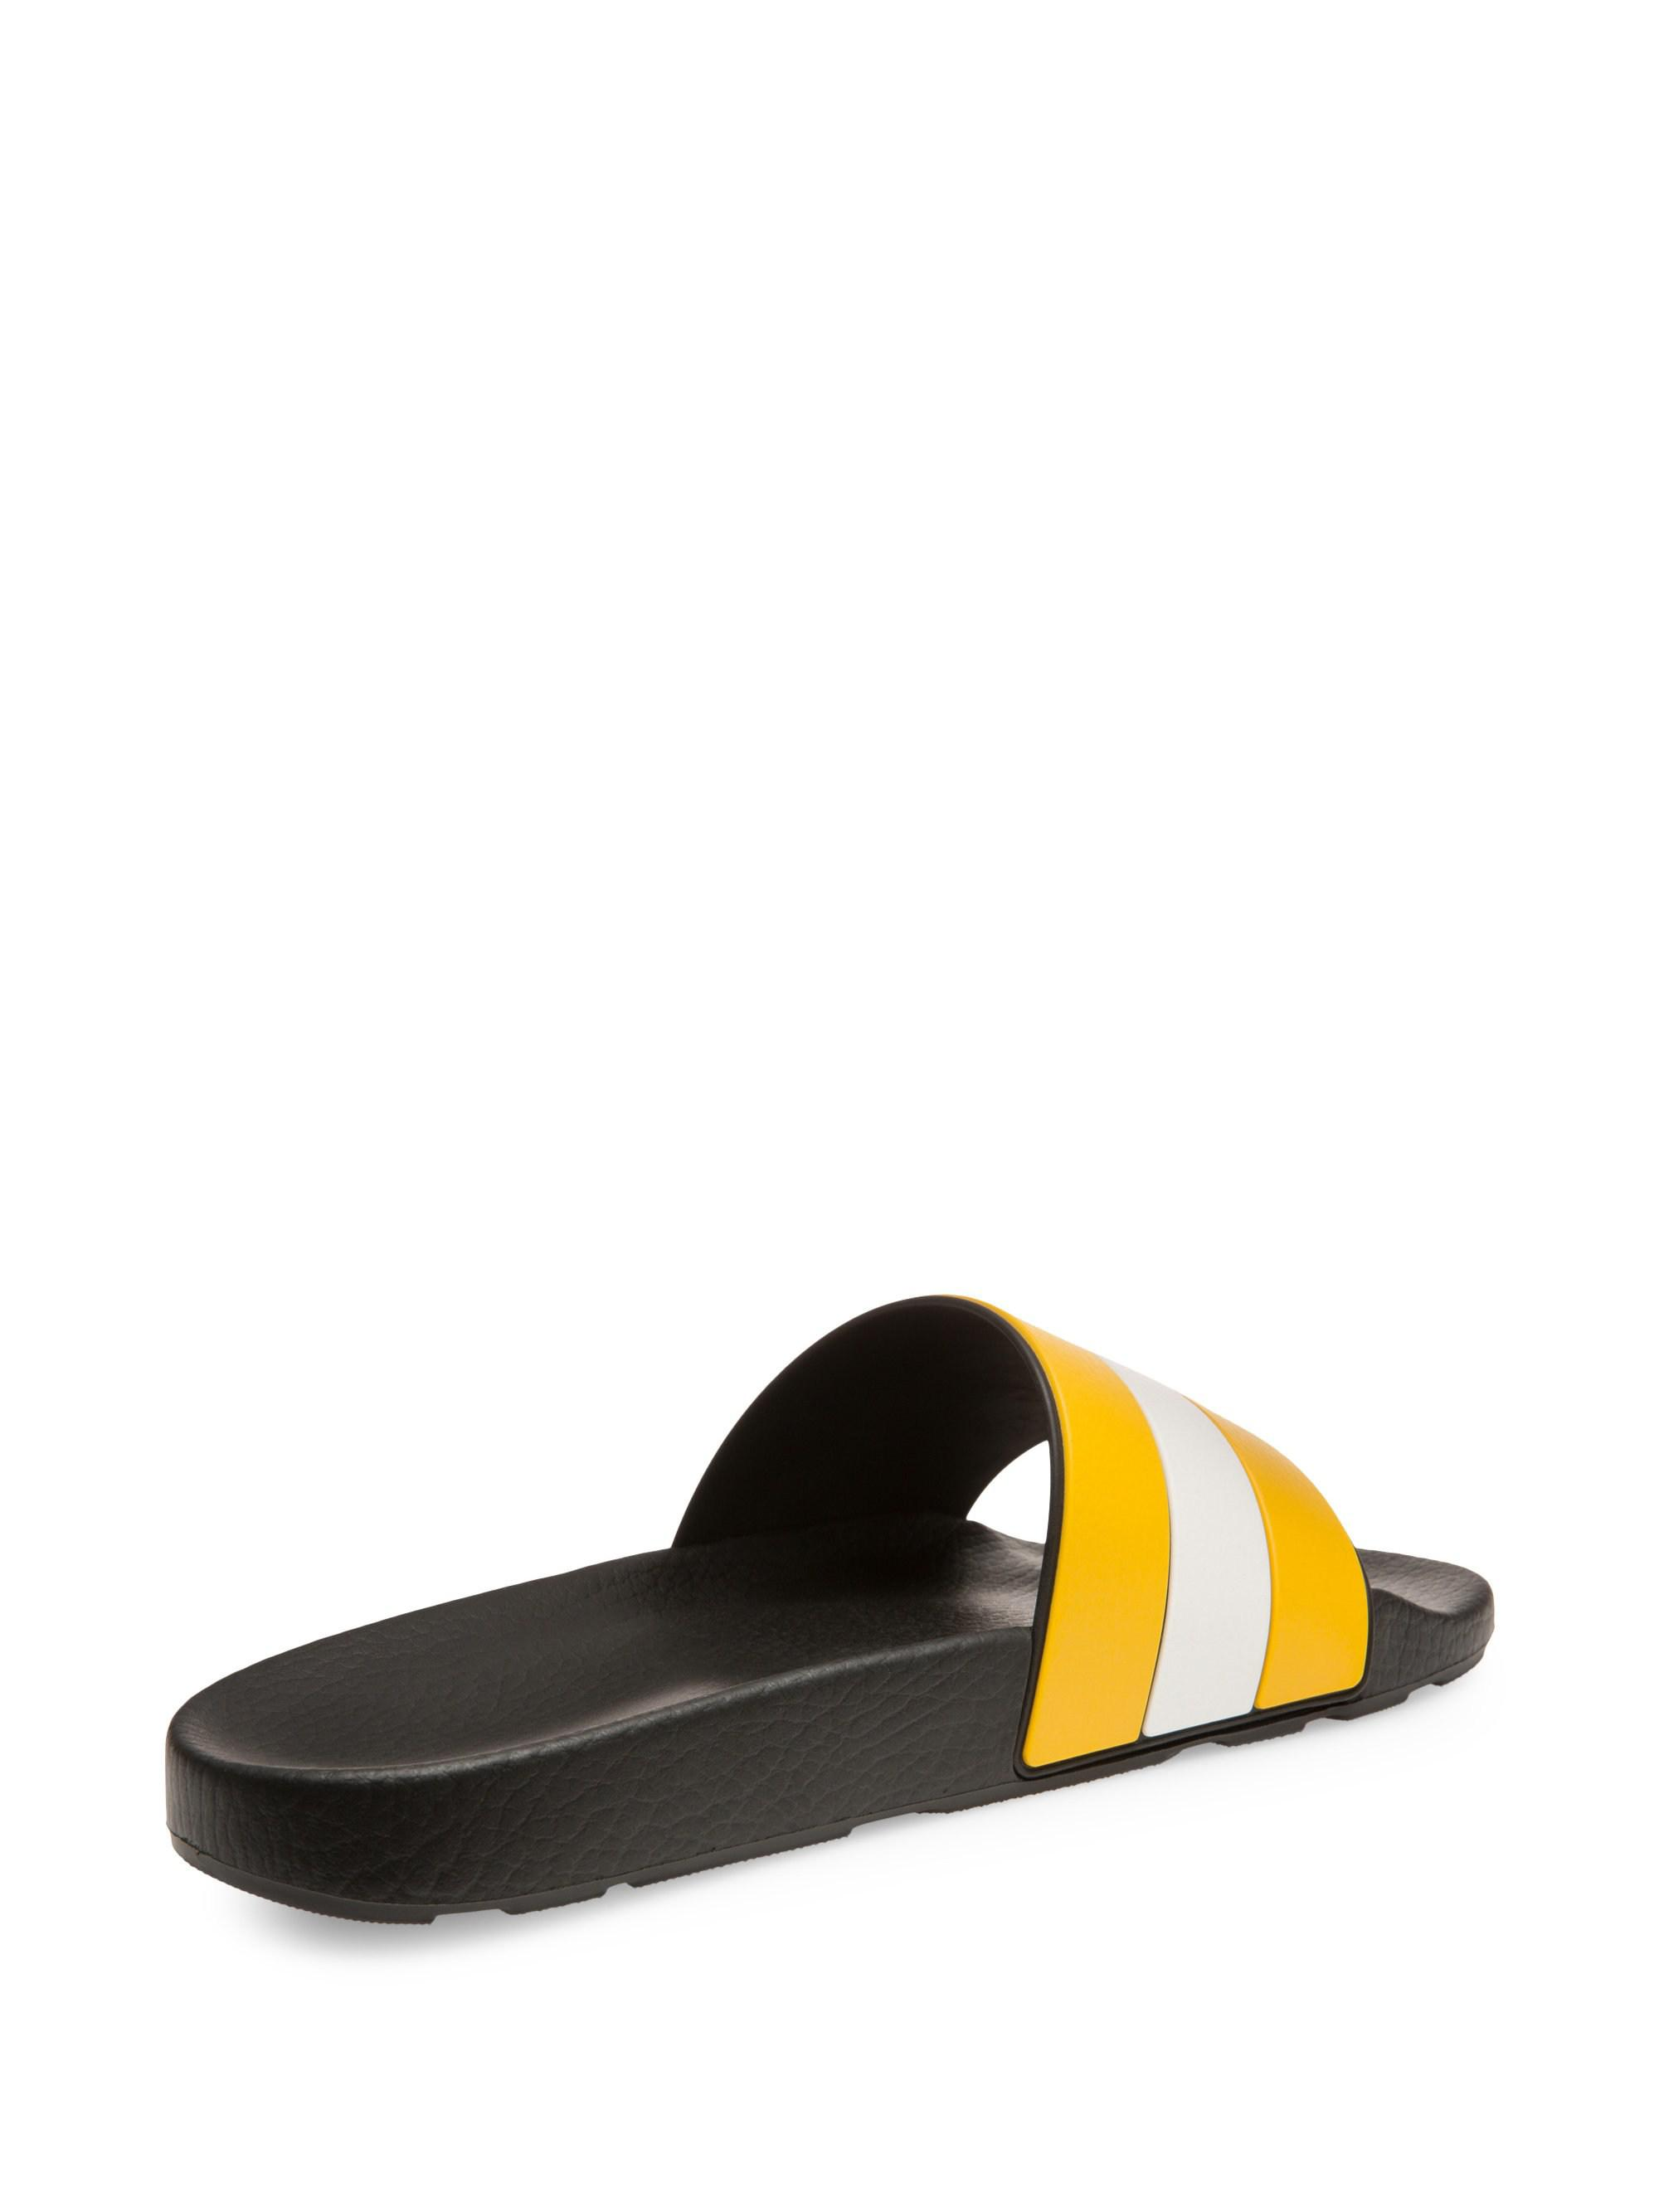 Bally Striped Pool Slides jPiKastVr